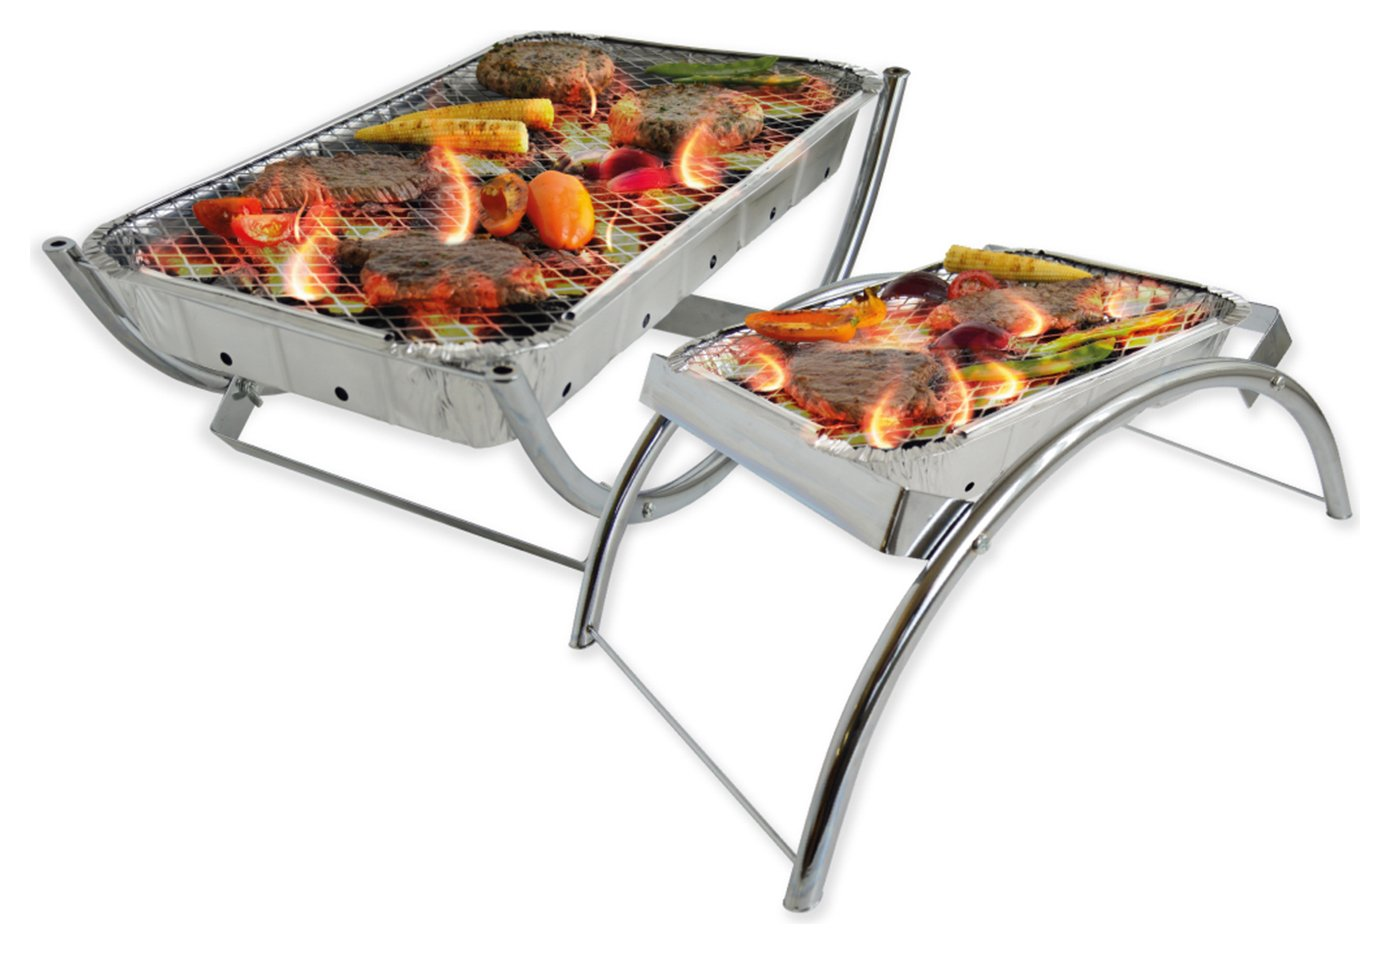 Sale On Bar Be Quick Dual Reusable Barbecue Stand Bar Be